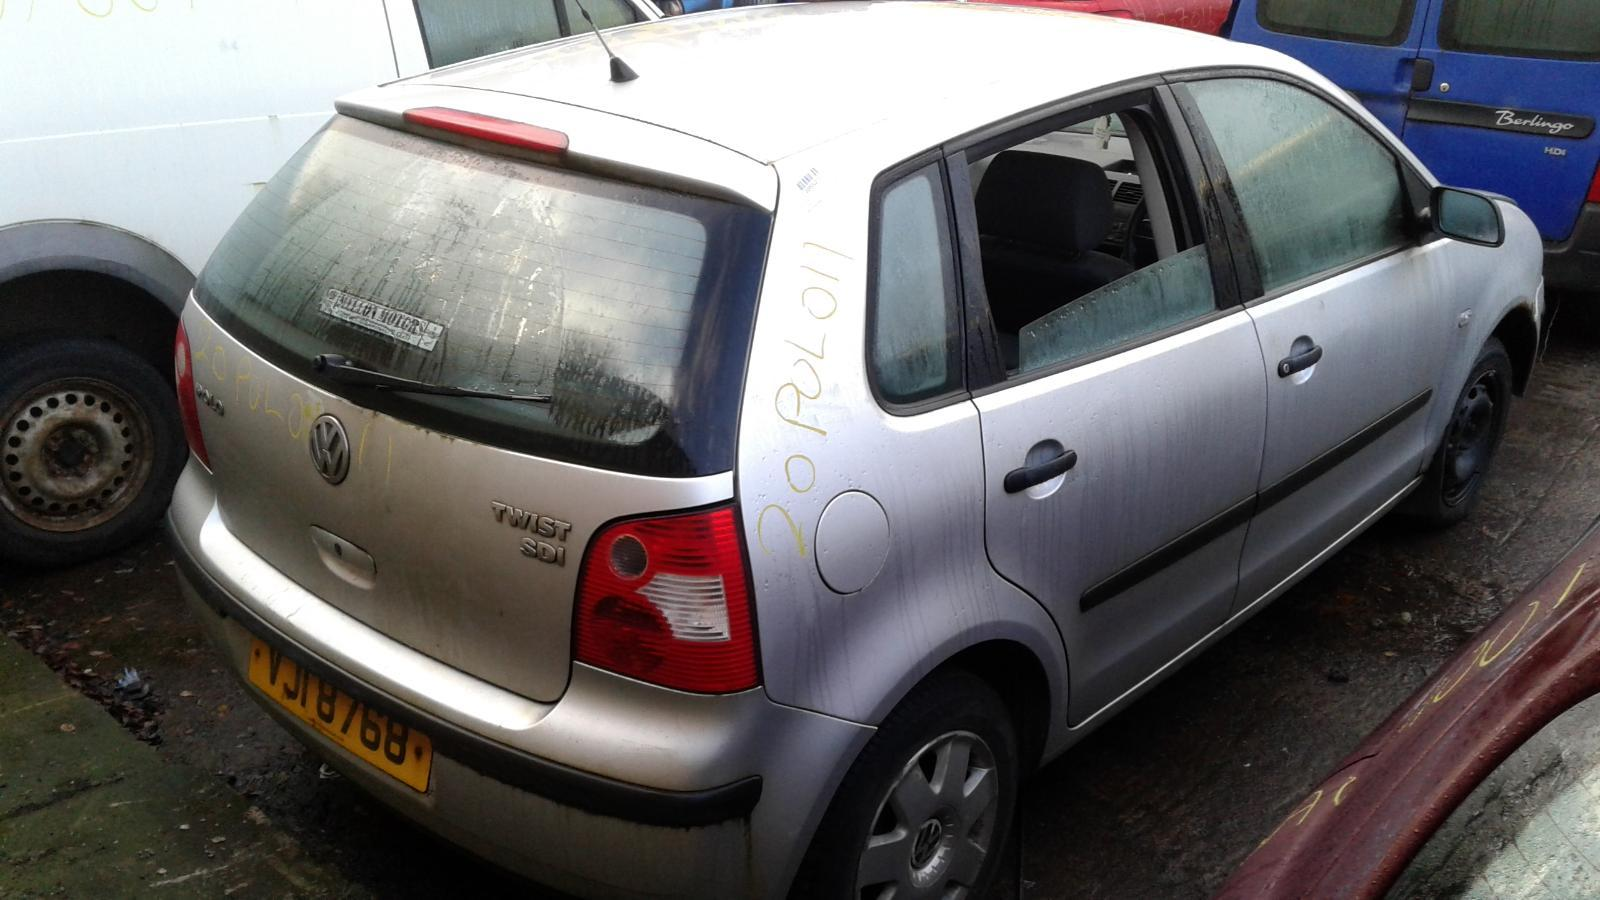 2004 VOLKSWAGEN POLO BREAKING FOR PARTS Image